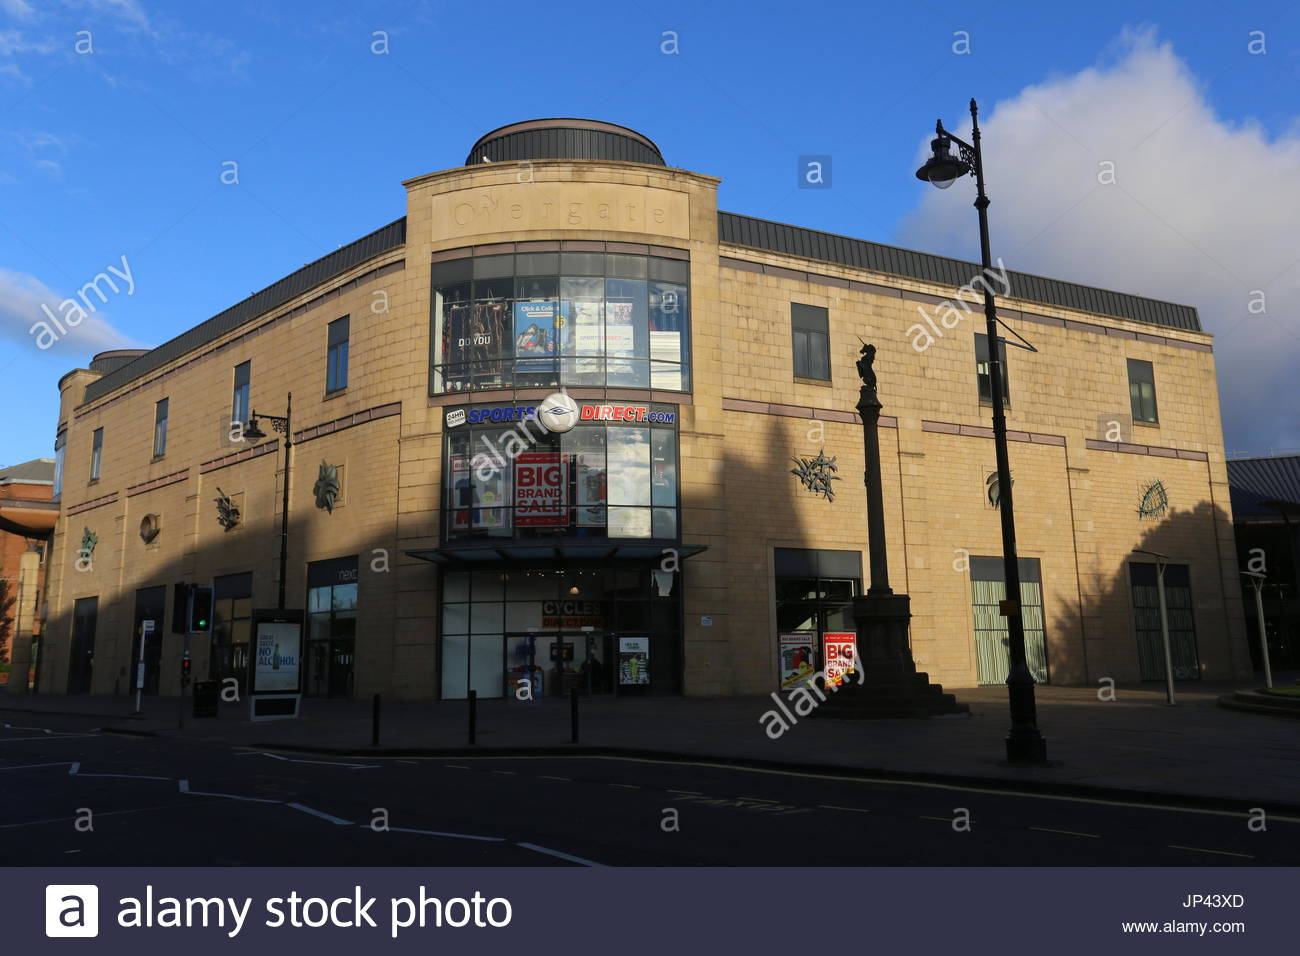 Exterior of Overgate Shopping Centre Dundee Scotland  July 2017 - Stock Image